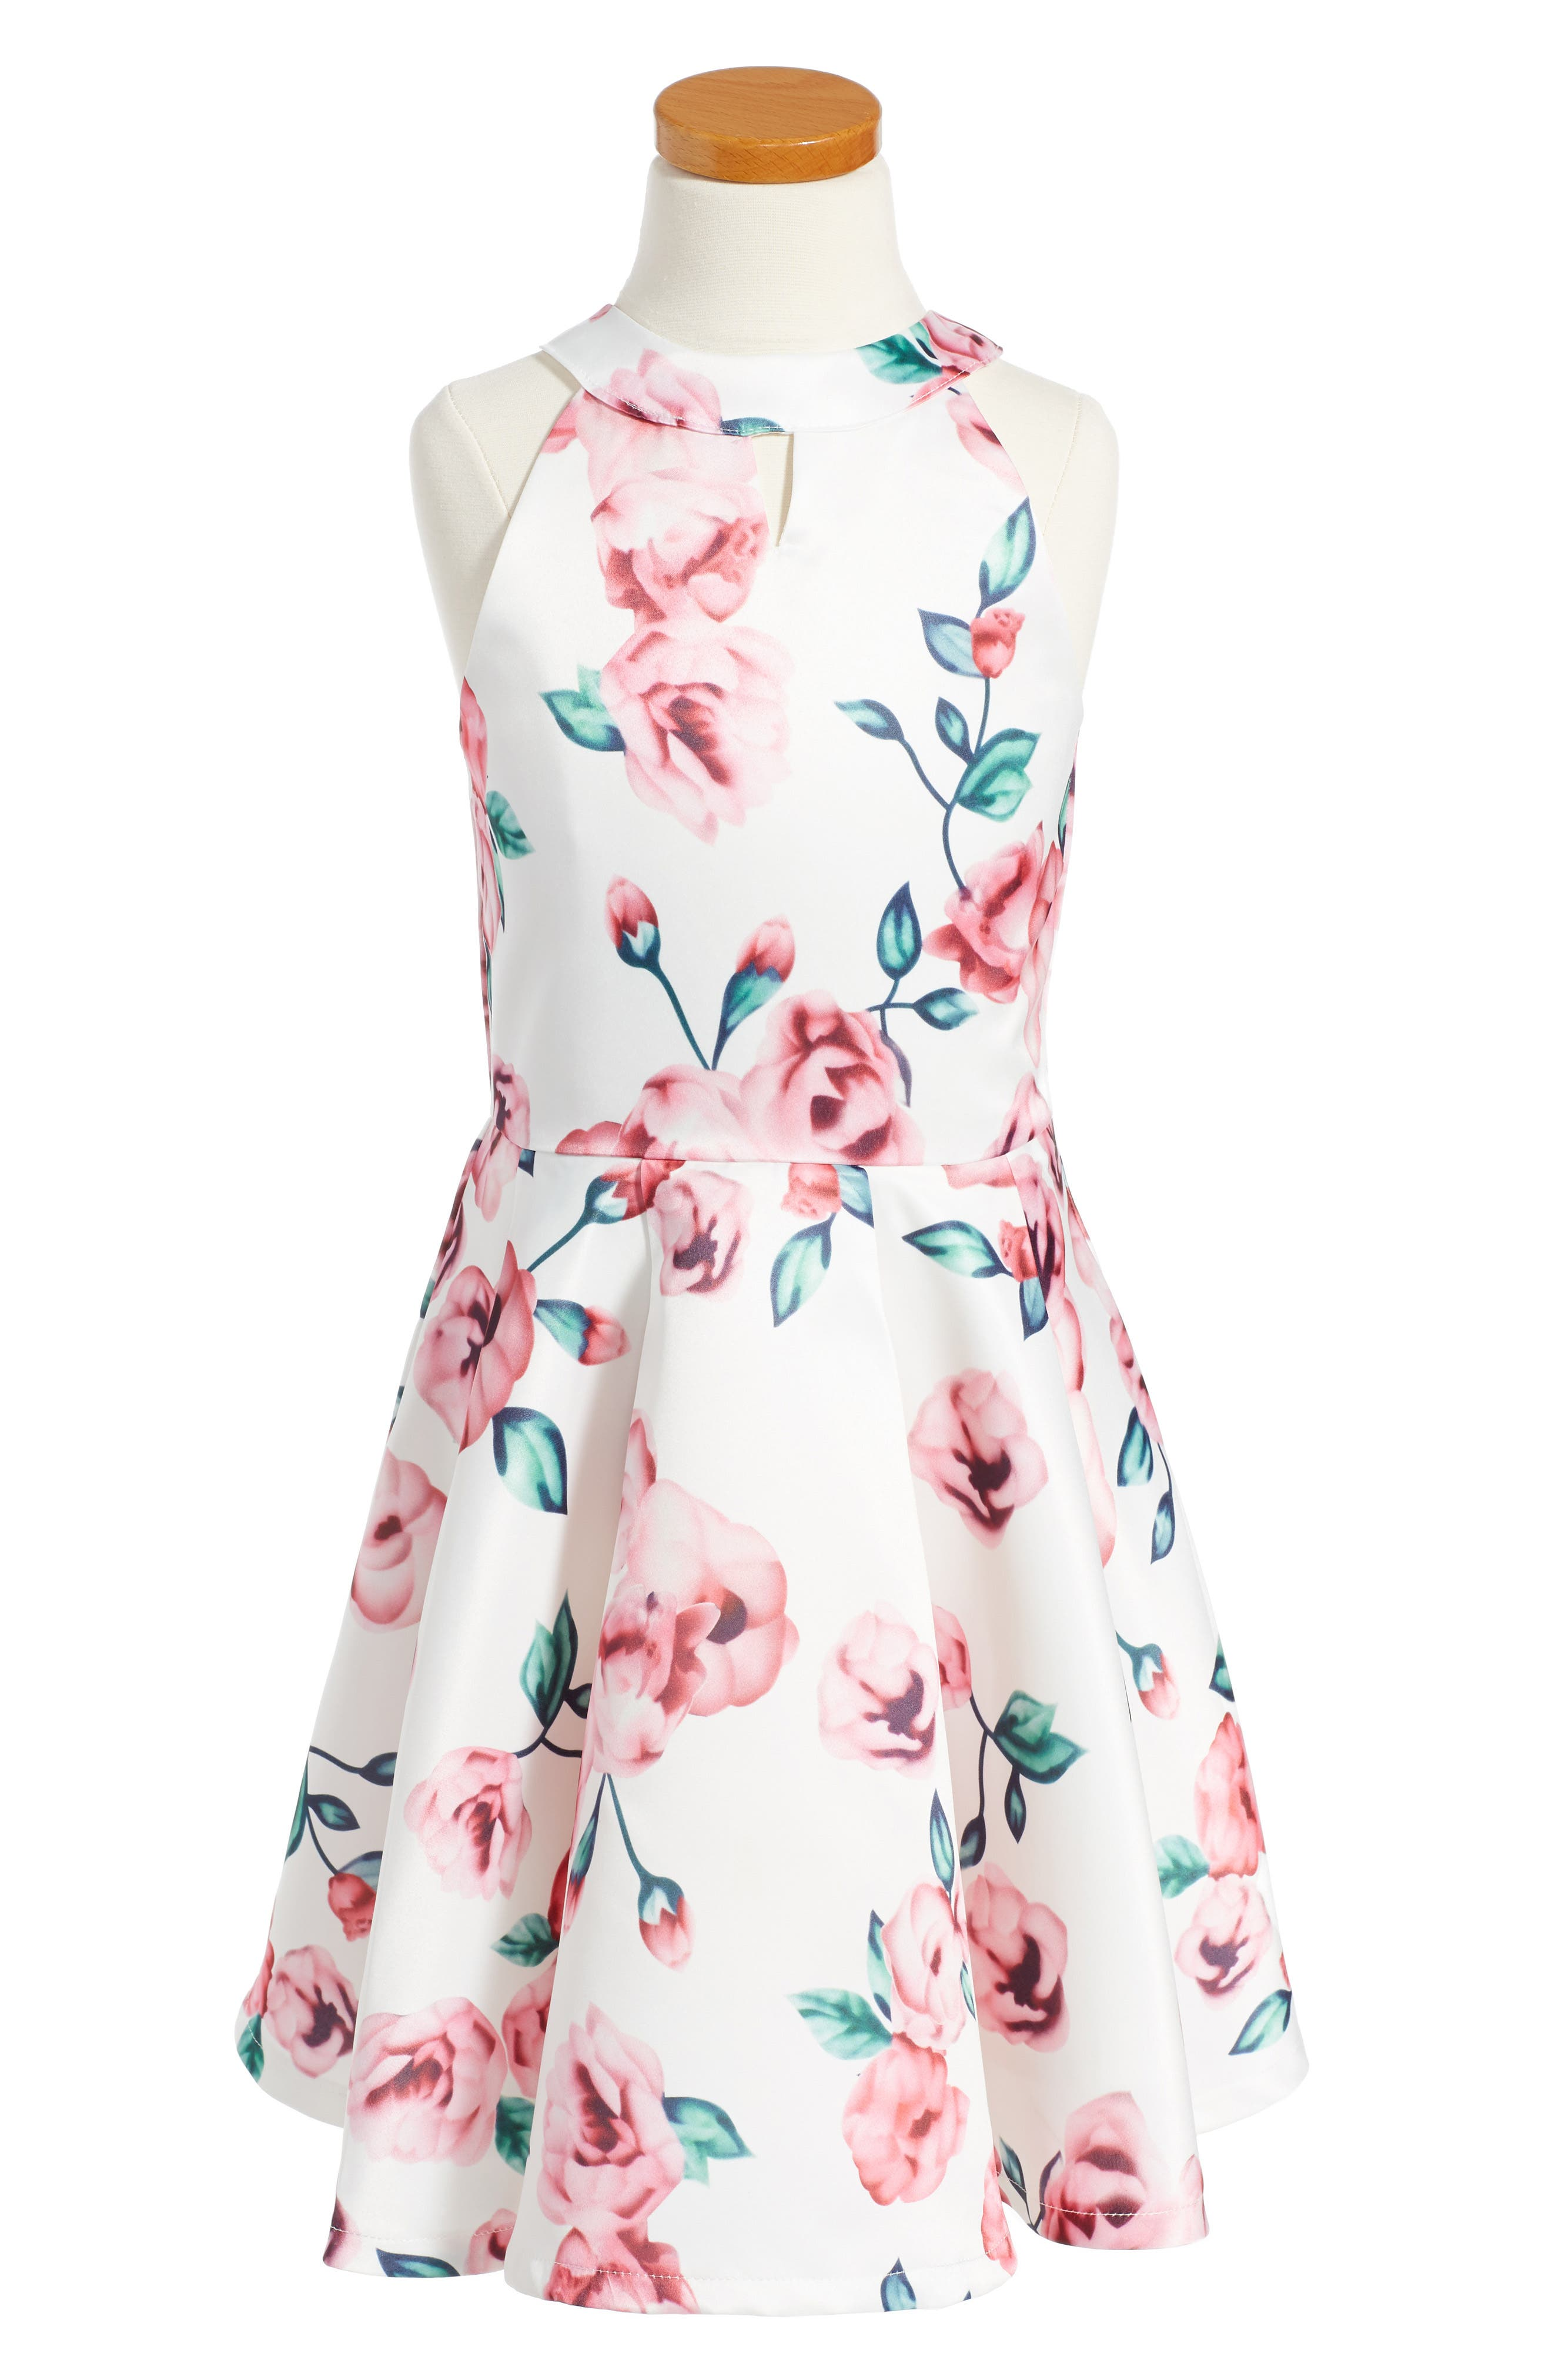 Floral Fit & Flare Dress,                             Main thumbnail 1, color,                             White/ Pink